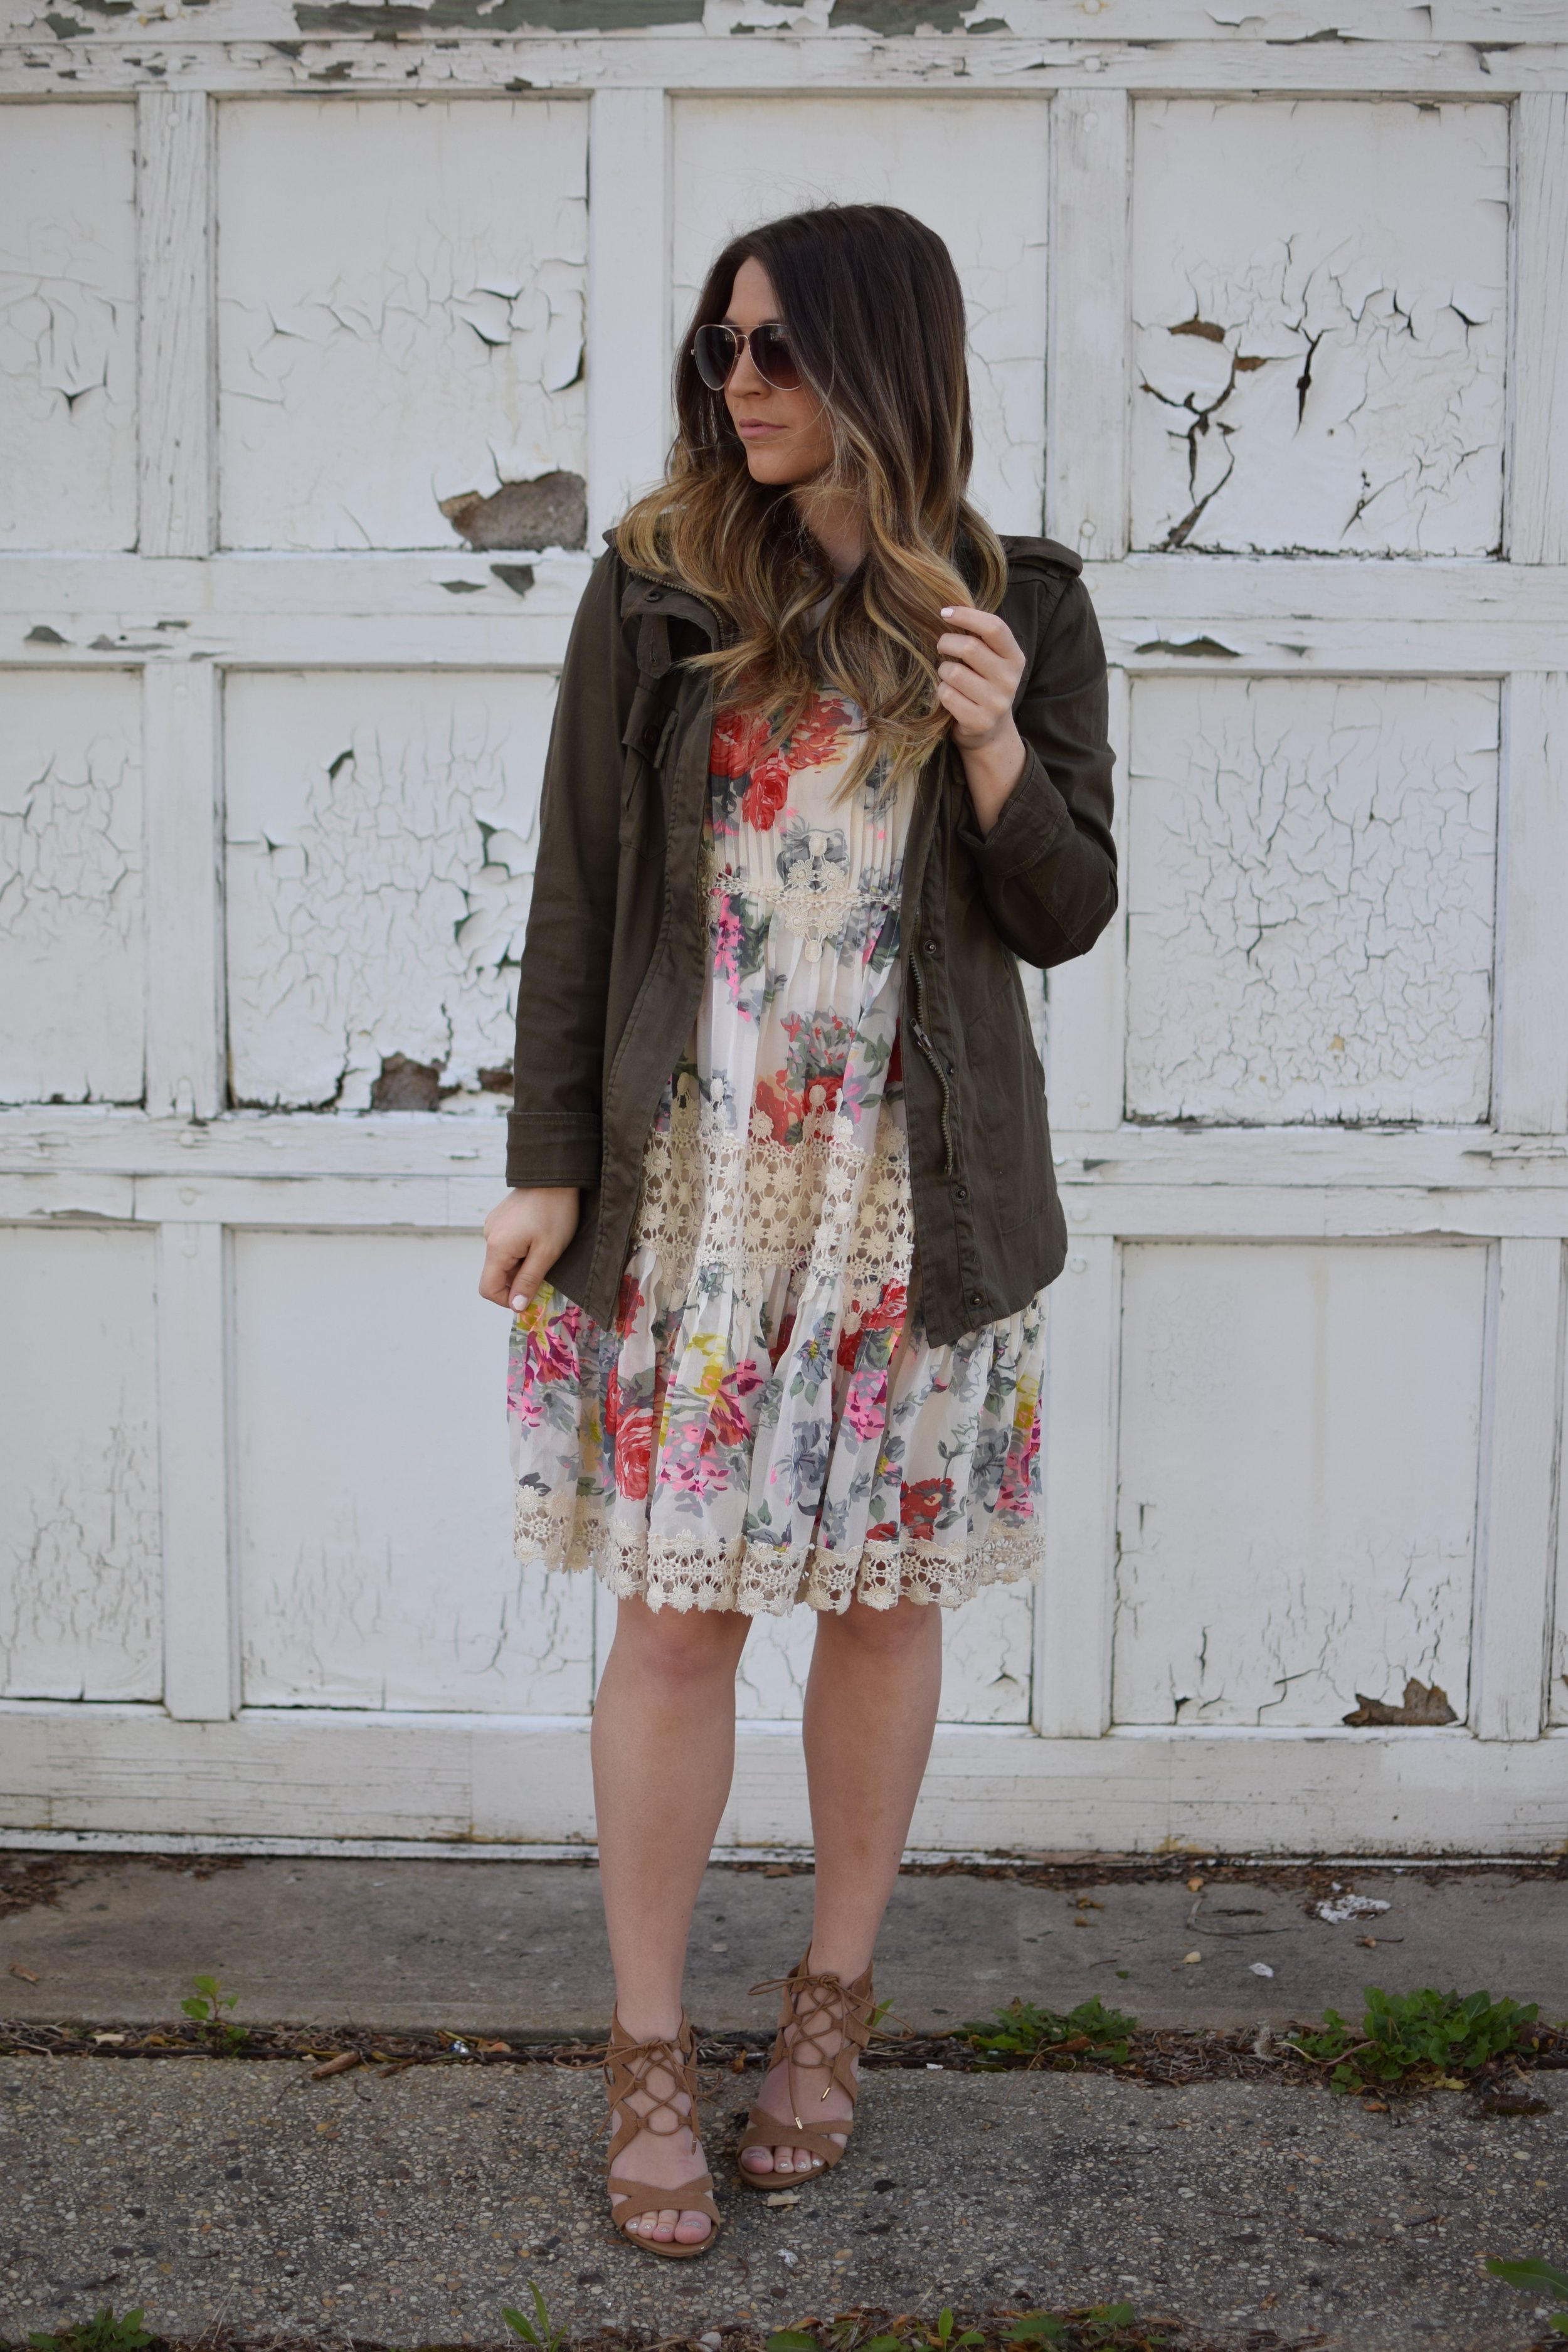 anthropology floral & lace dress / spring & summer outfit idea / guest of wedding dress idea / how to style a utility jacket